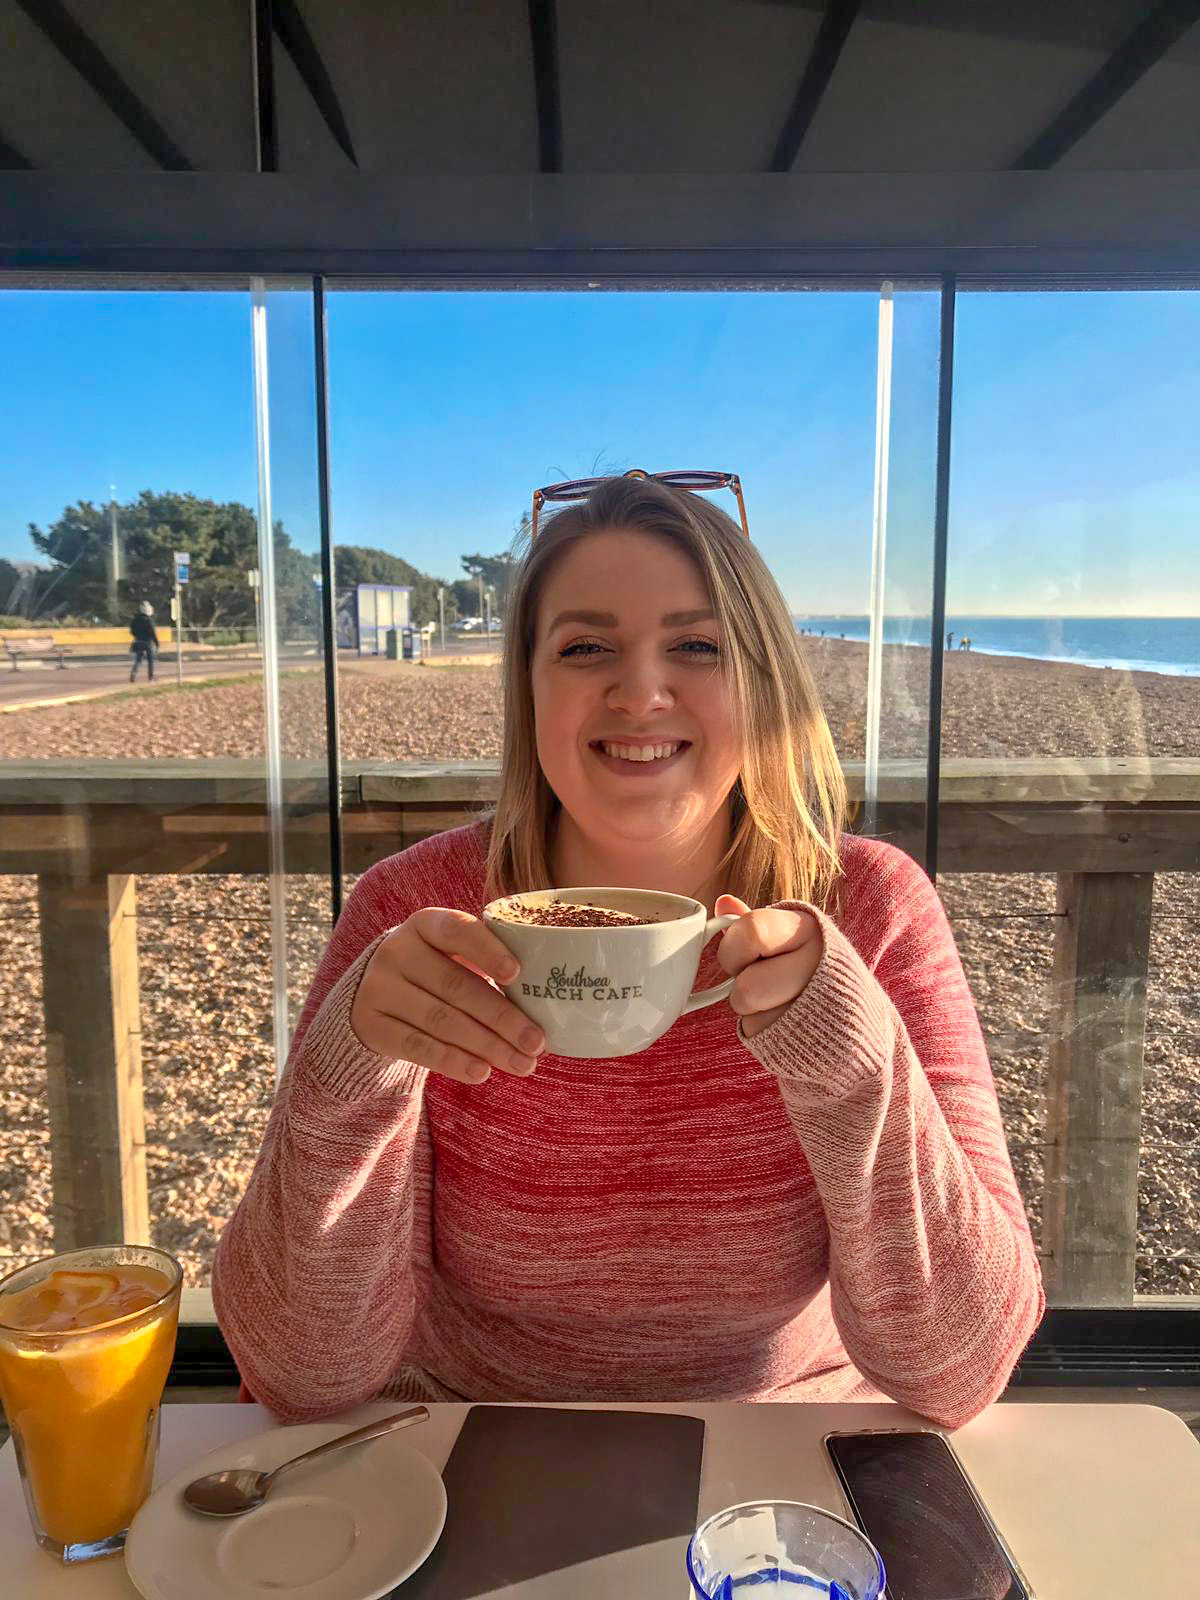 breakfast at southsea beach cafe